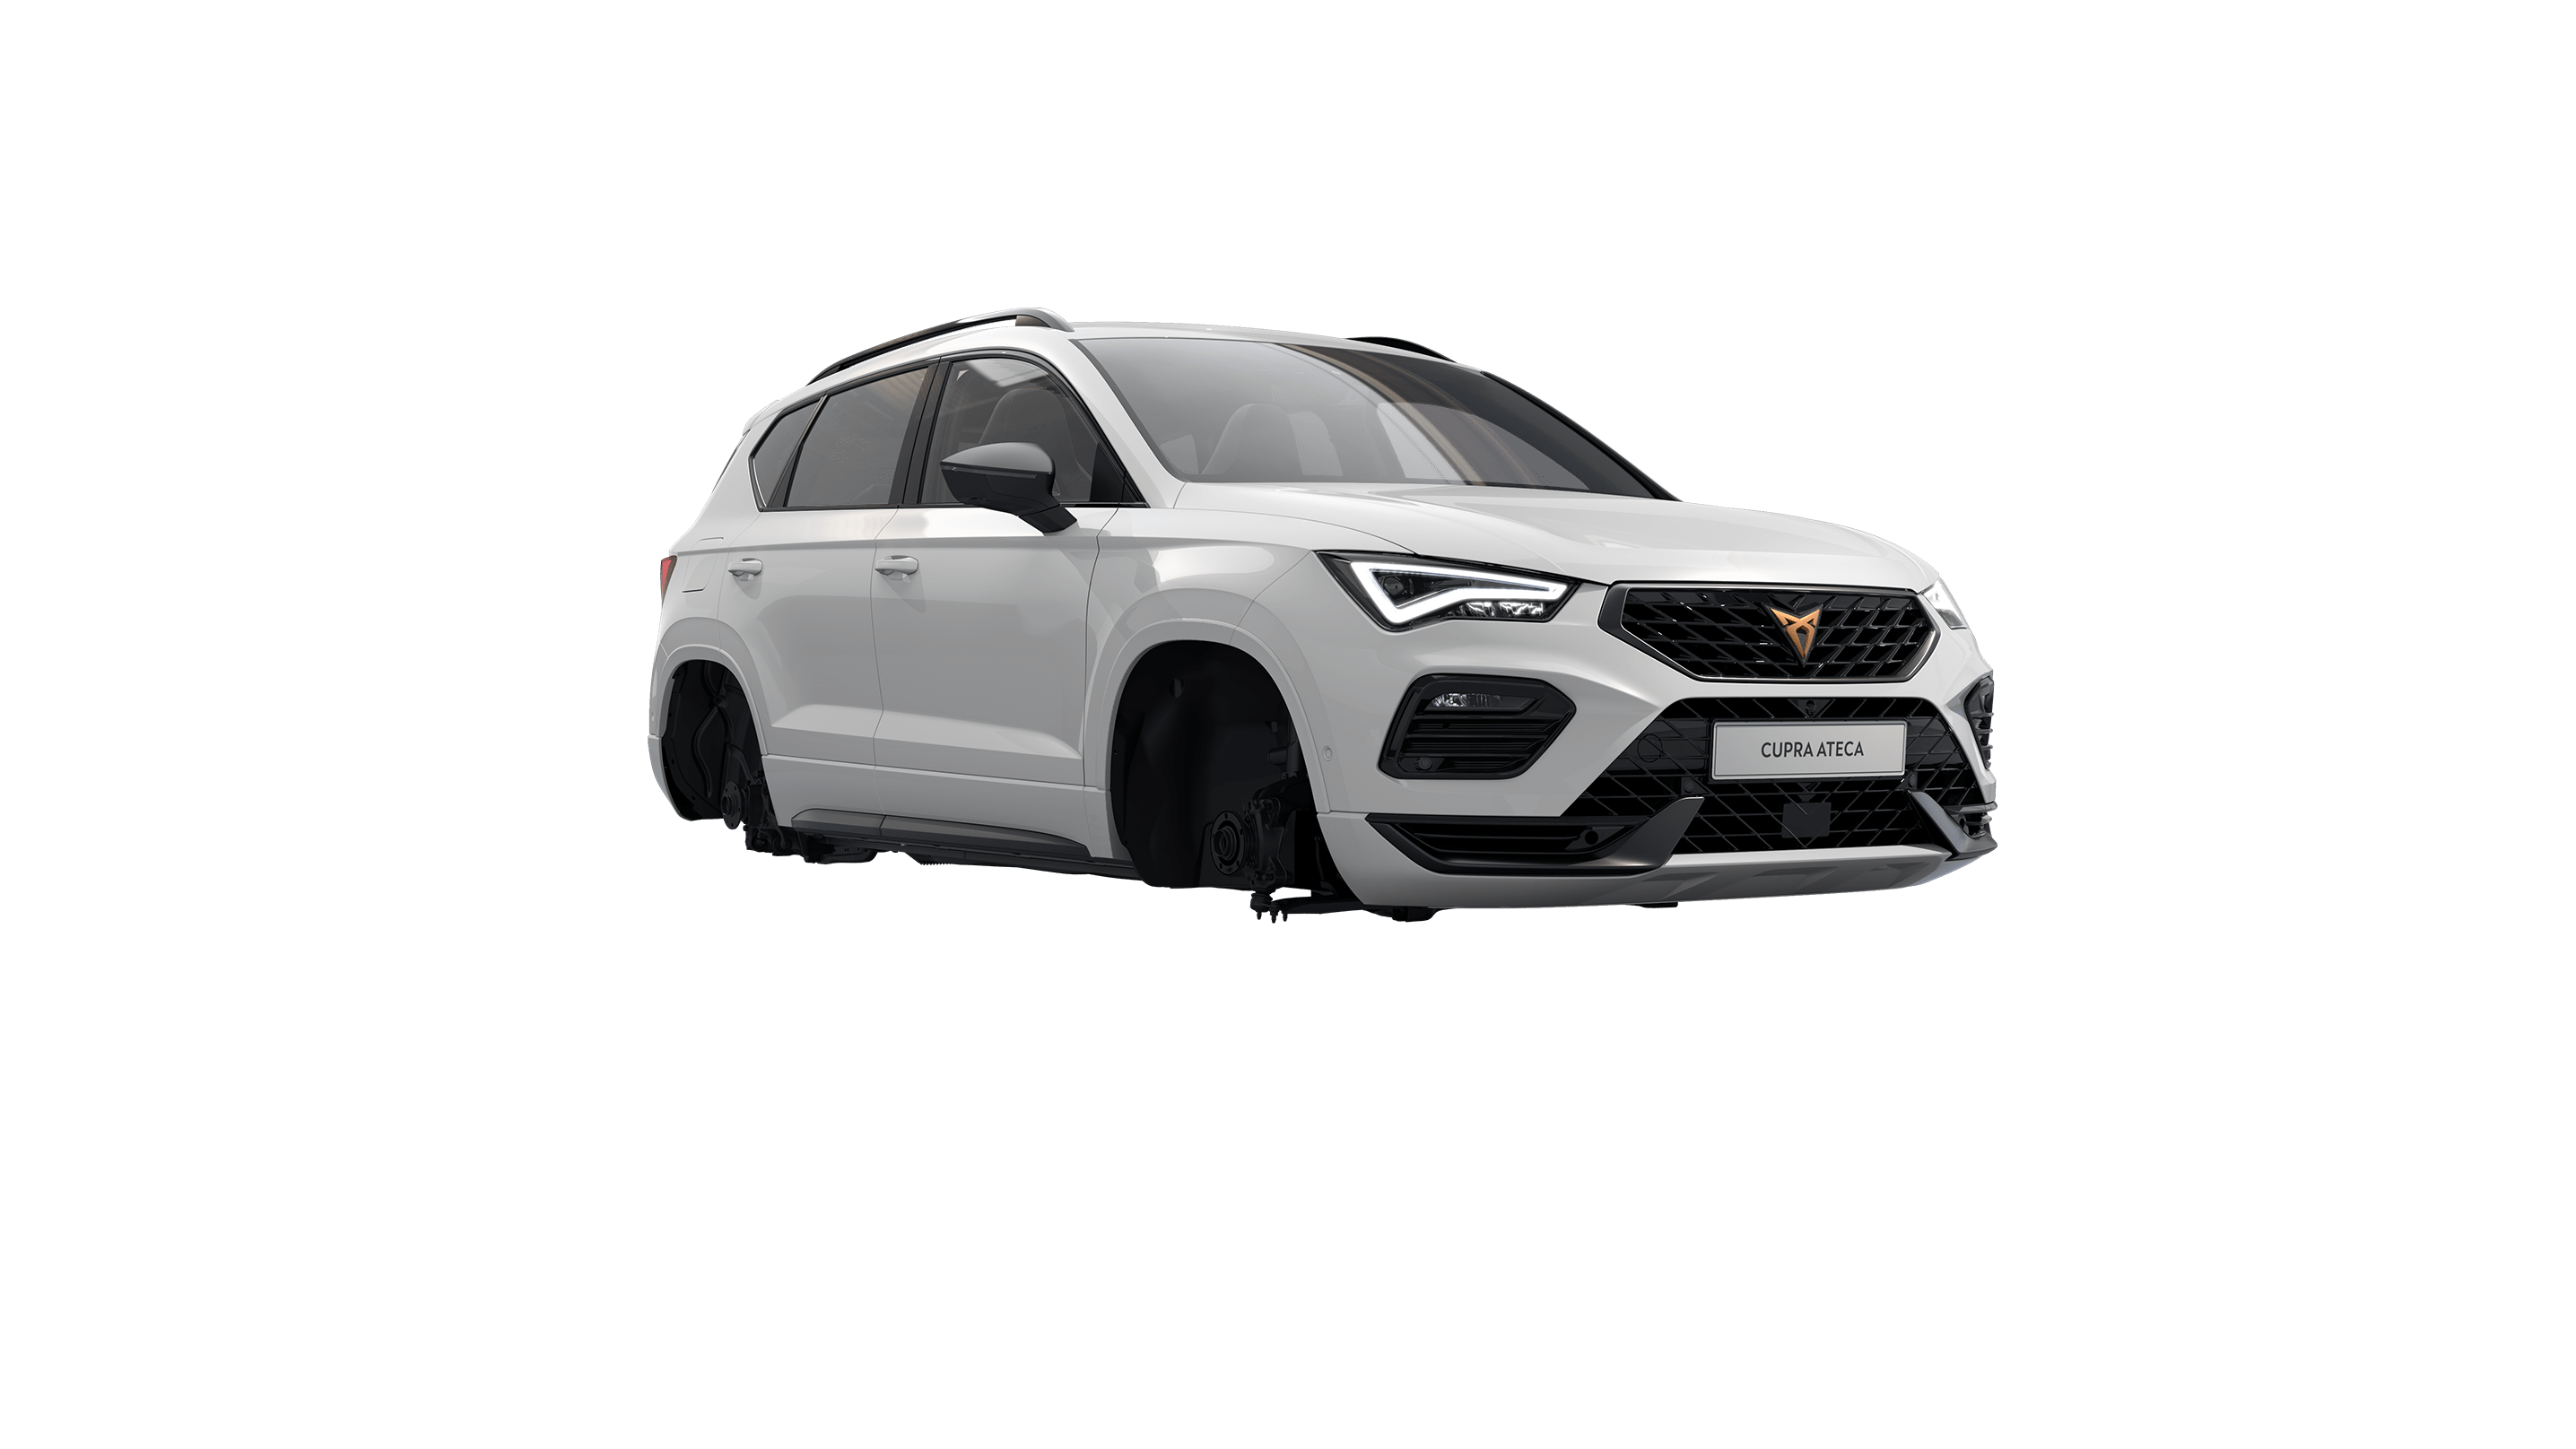 cupra-ateca-2020-bila-white-colour